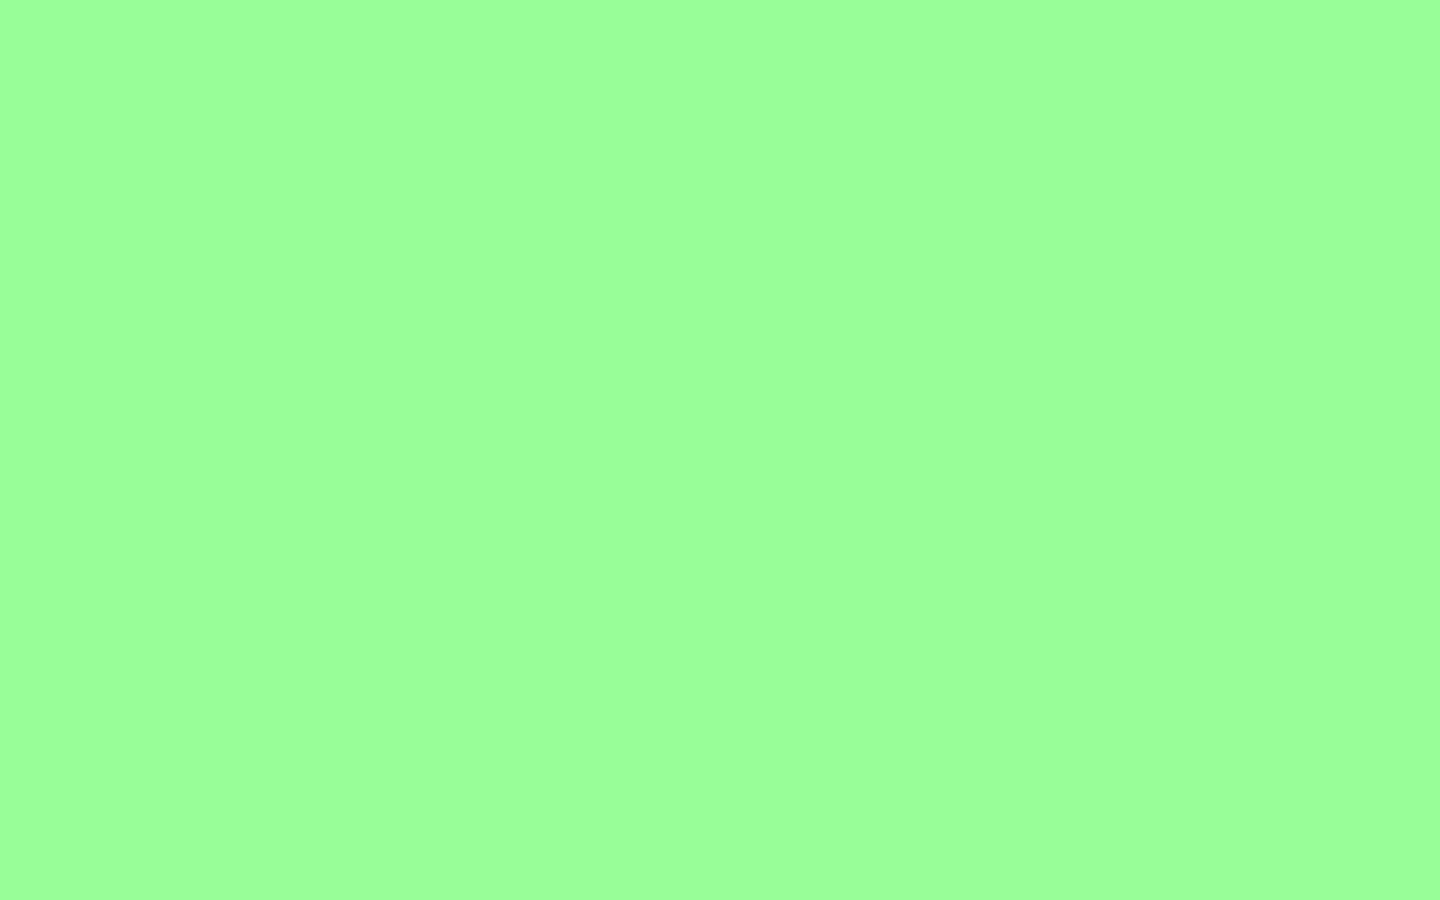 1440x900 Mint Green Solid Color Background